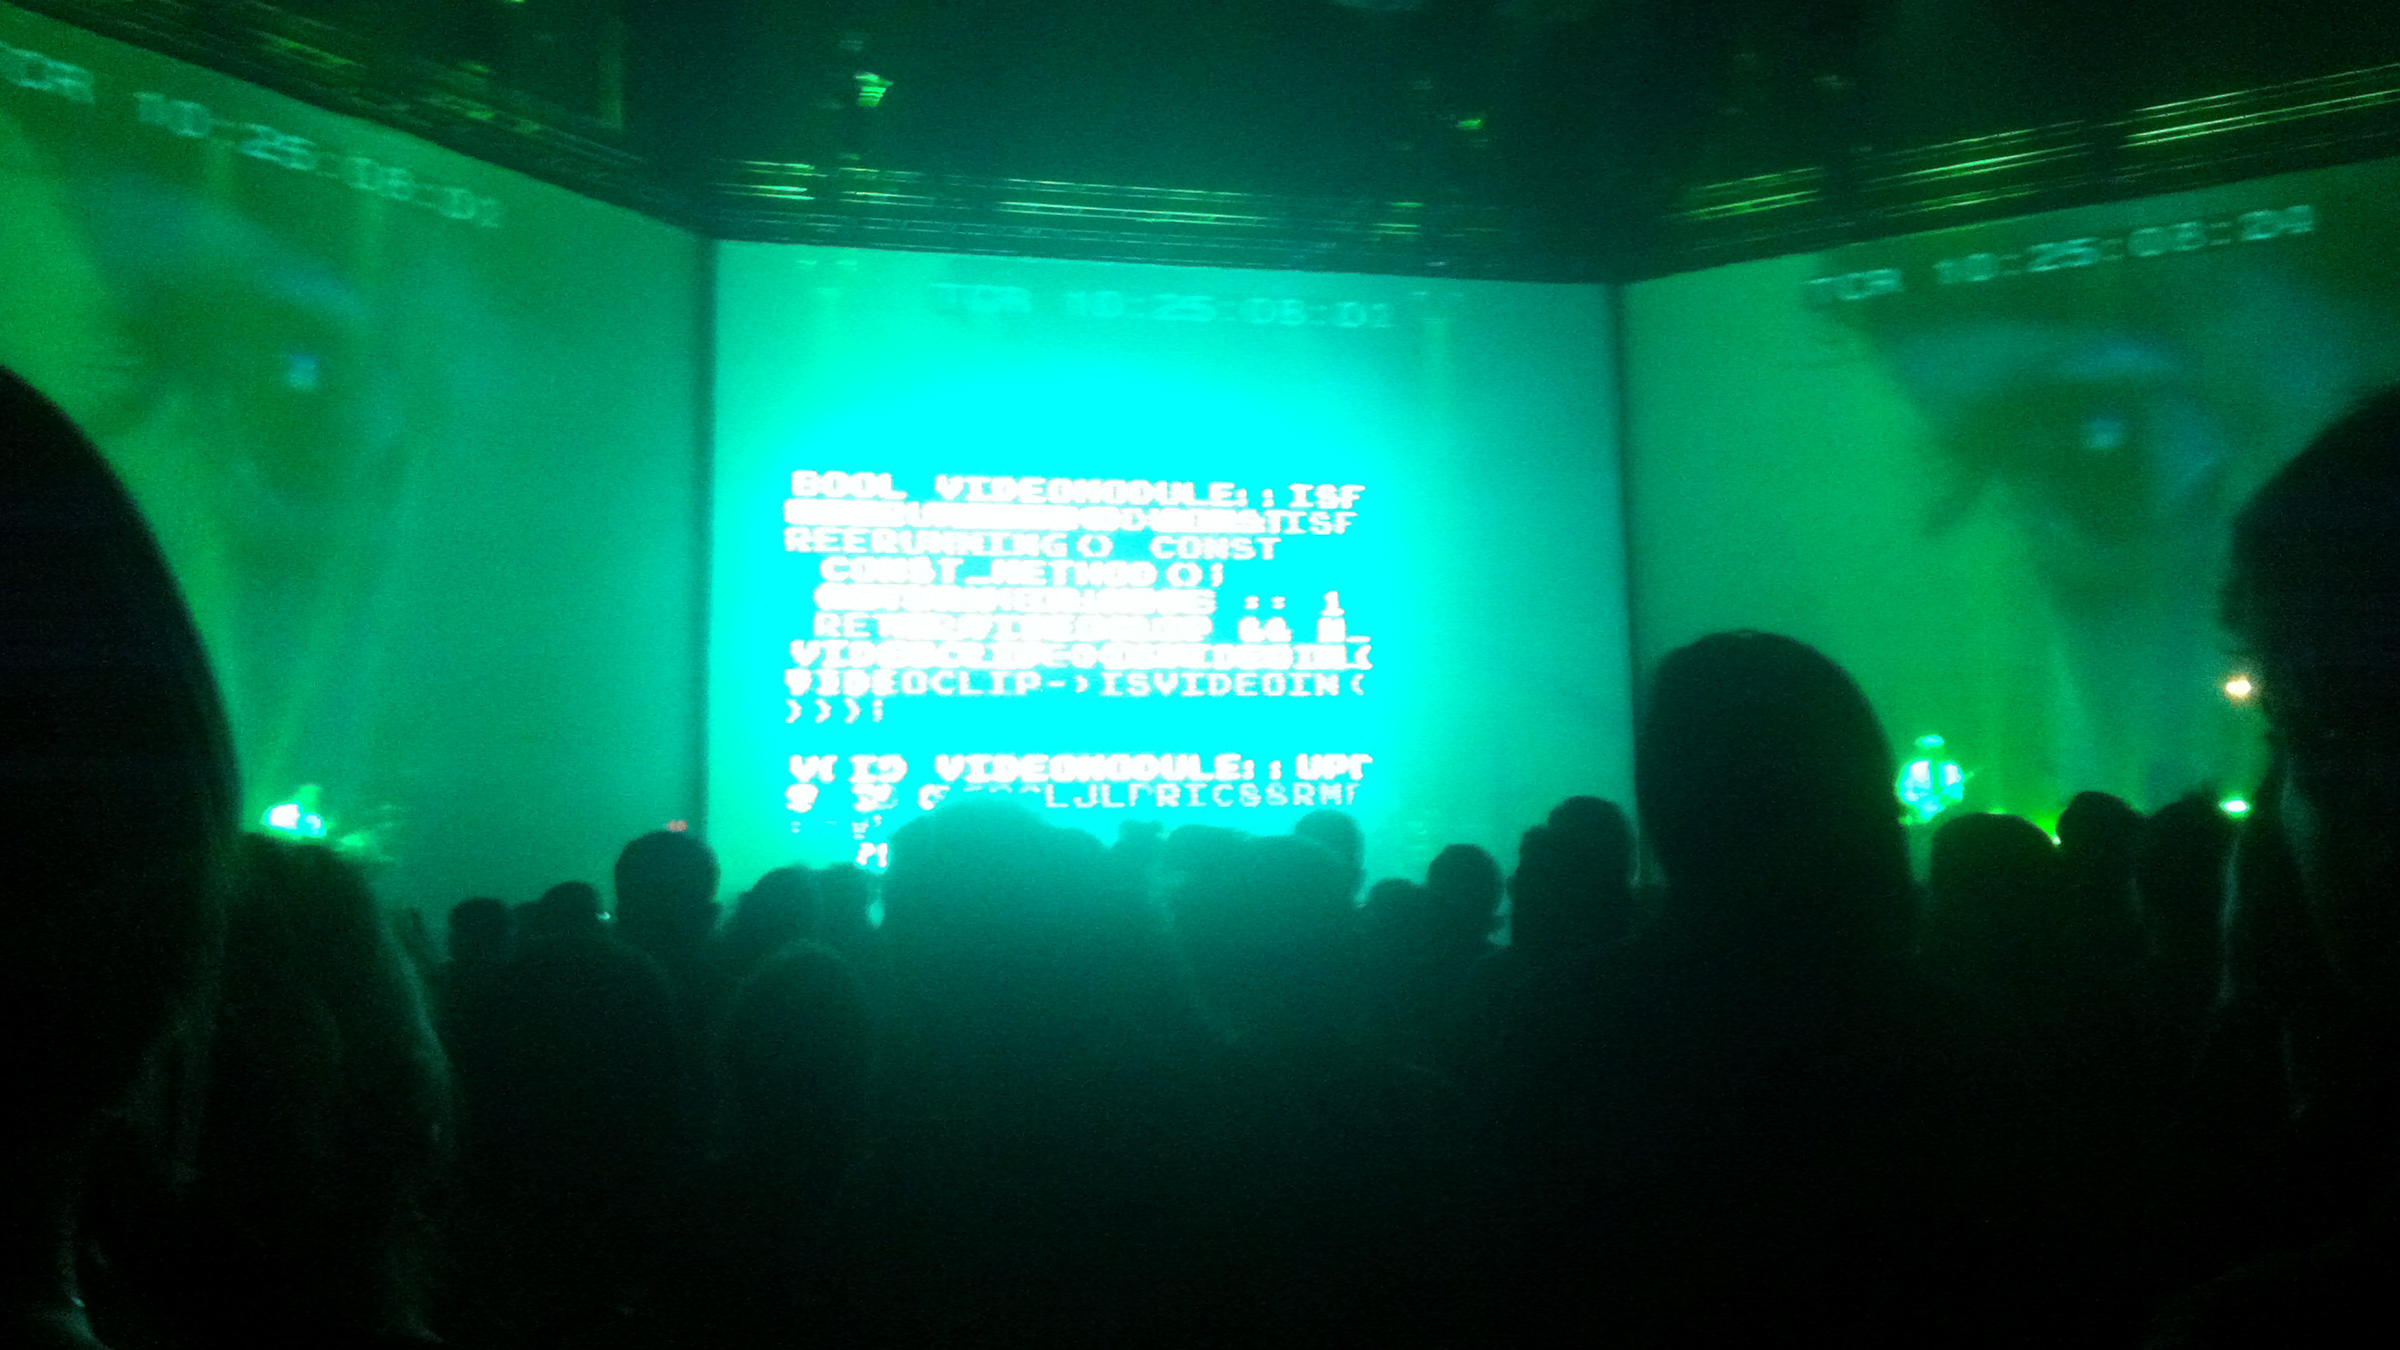 Data rules you.  Massive Attack V Adam Curtis  at the Park Avenue Armory, NYC